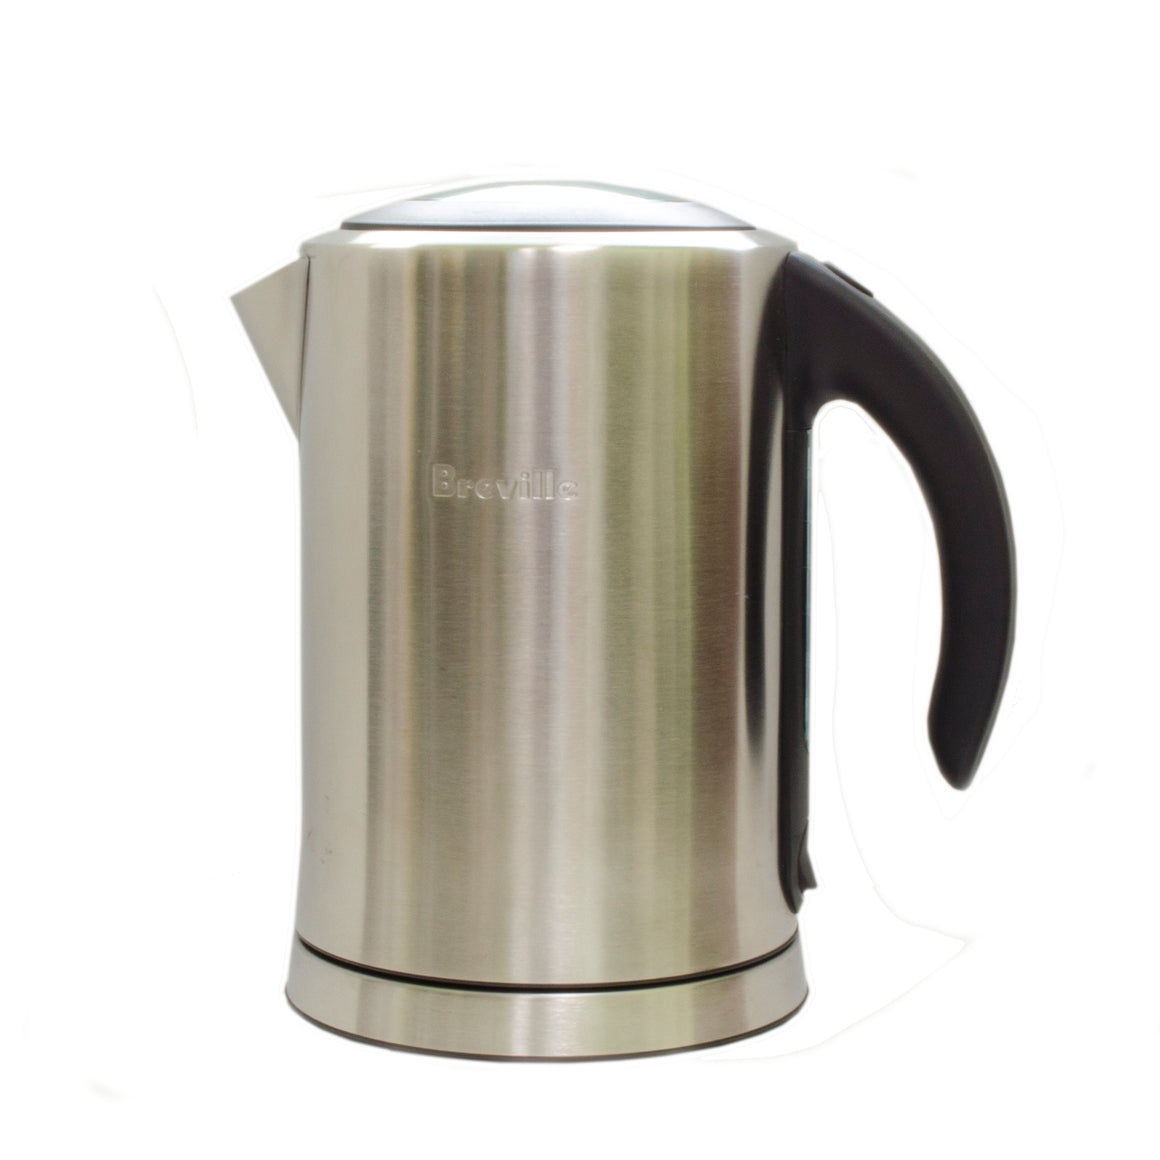 Breville Soft Top Kettle